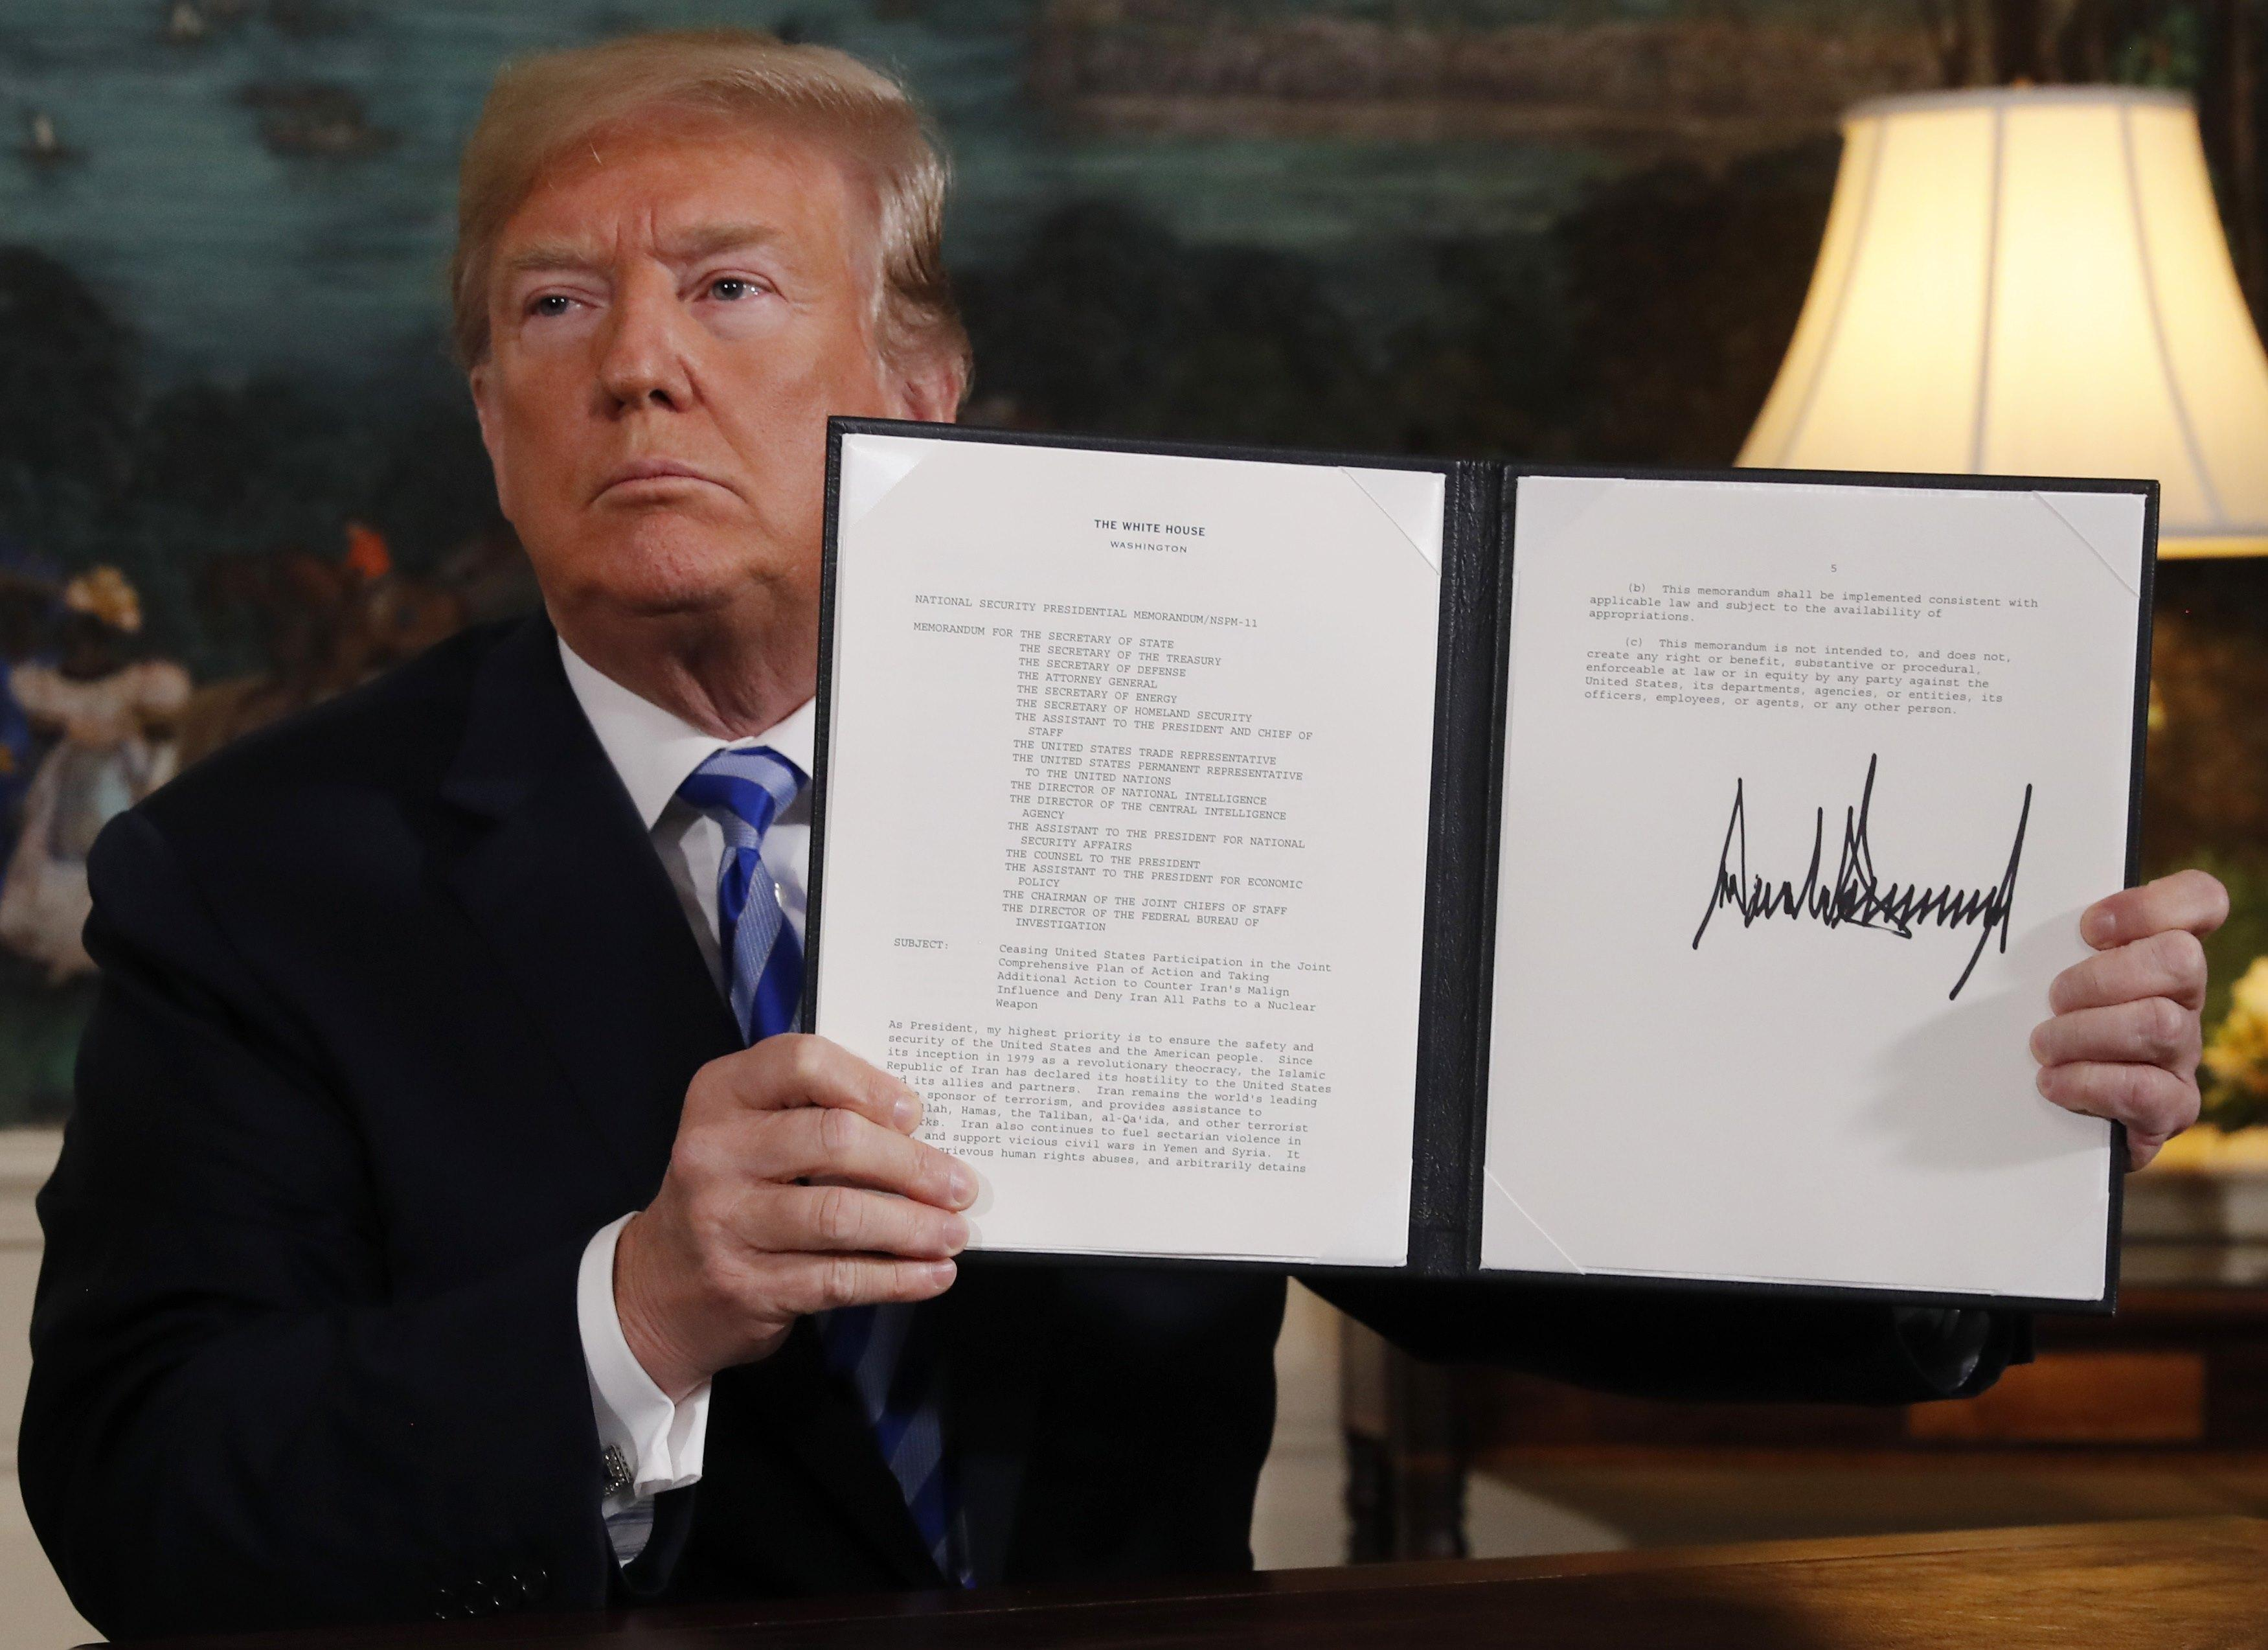 Europeans Work To Save Iran Deal And Business After Trump Pulls